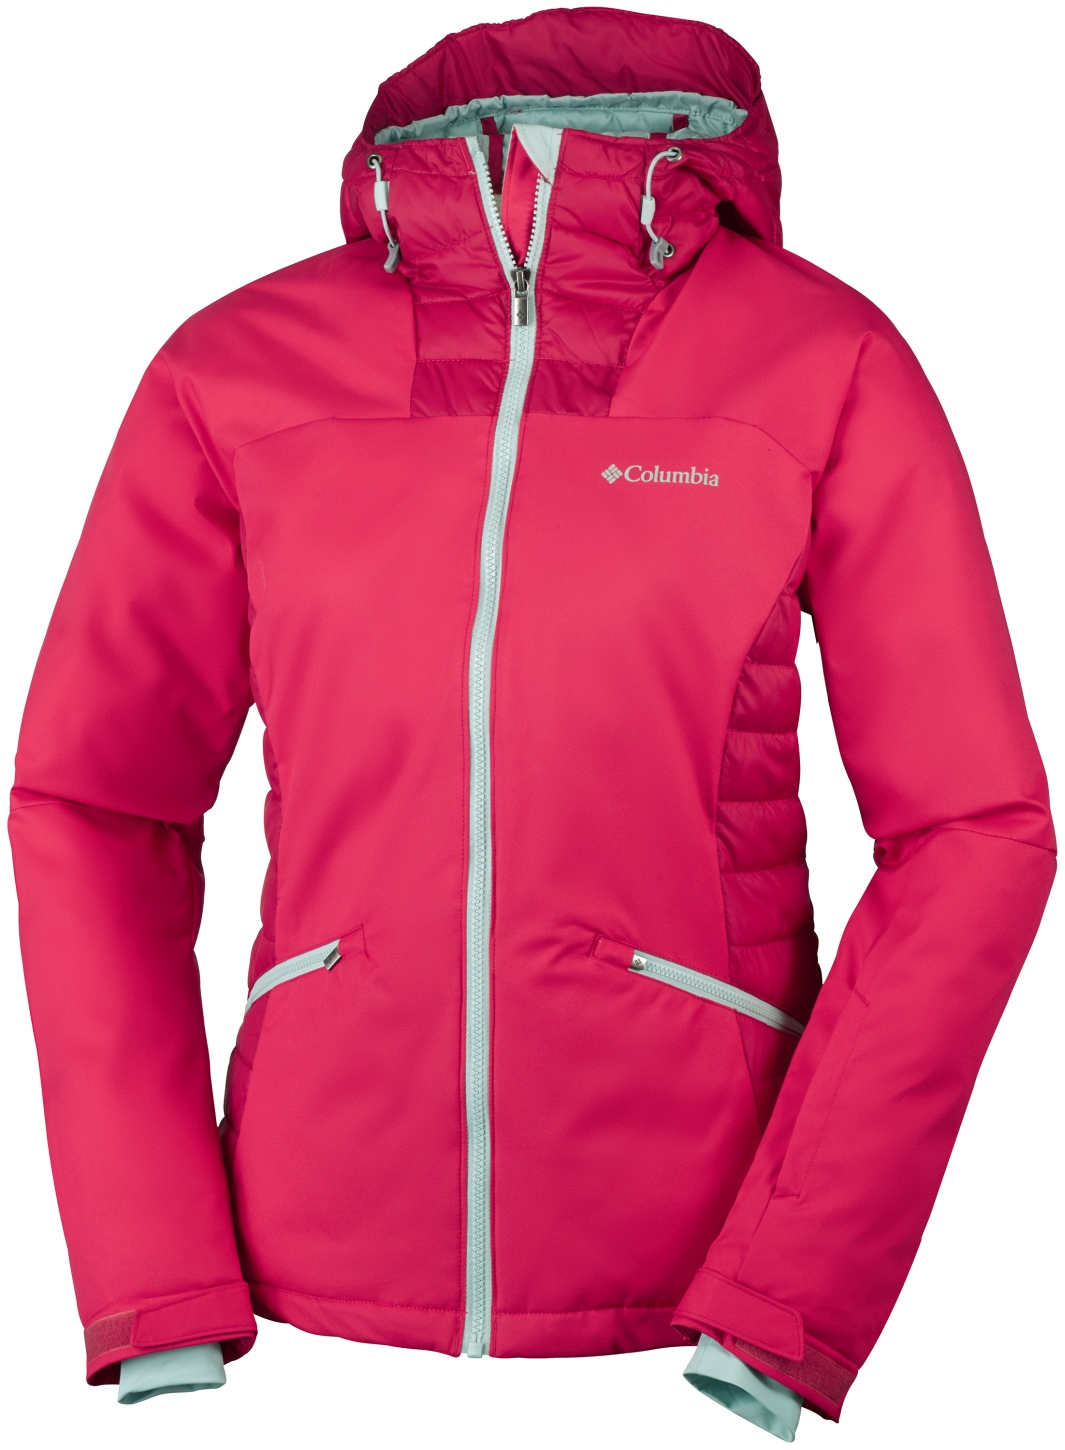 Columbia Women's Salcantay Hooded Ski Jacket Red Camellia, Red Lily-30